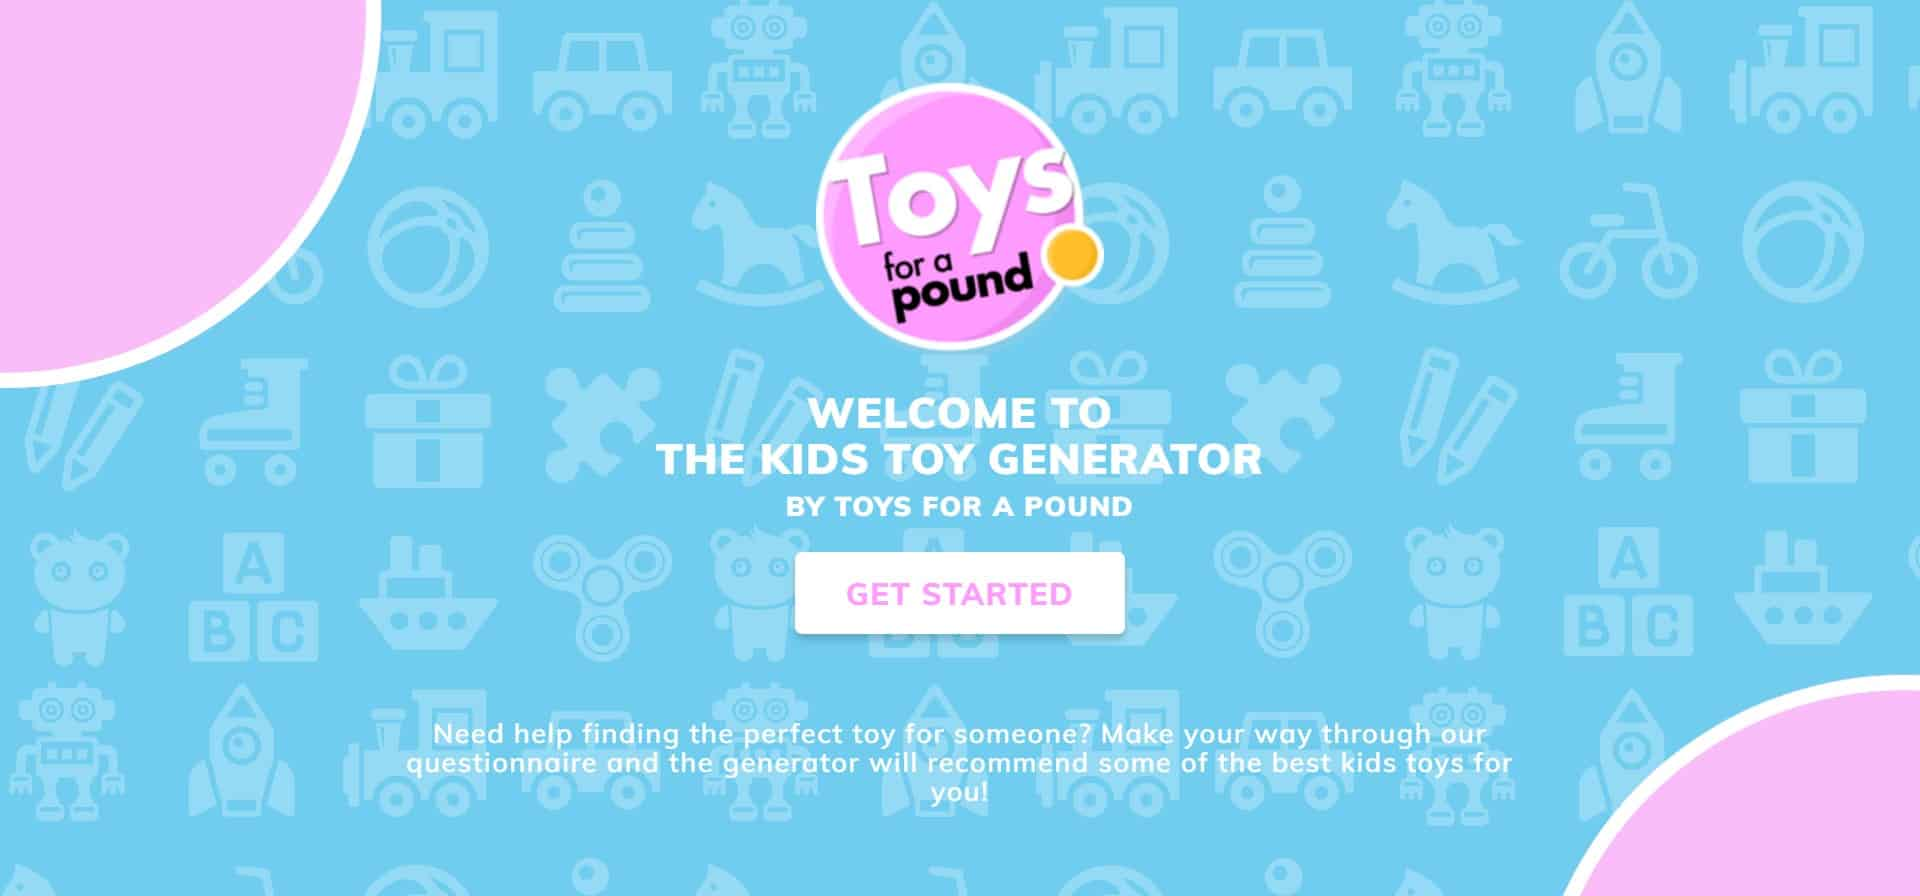 Toys for a Pound 'The Kids Toy Generator'